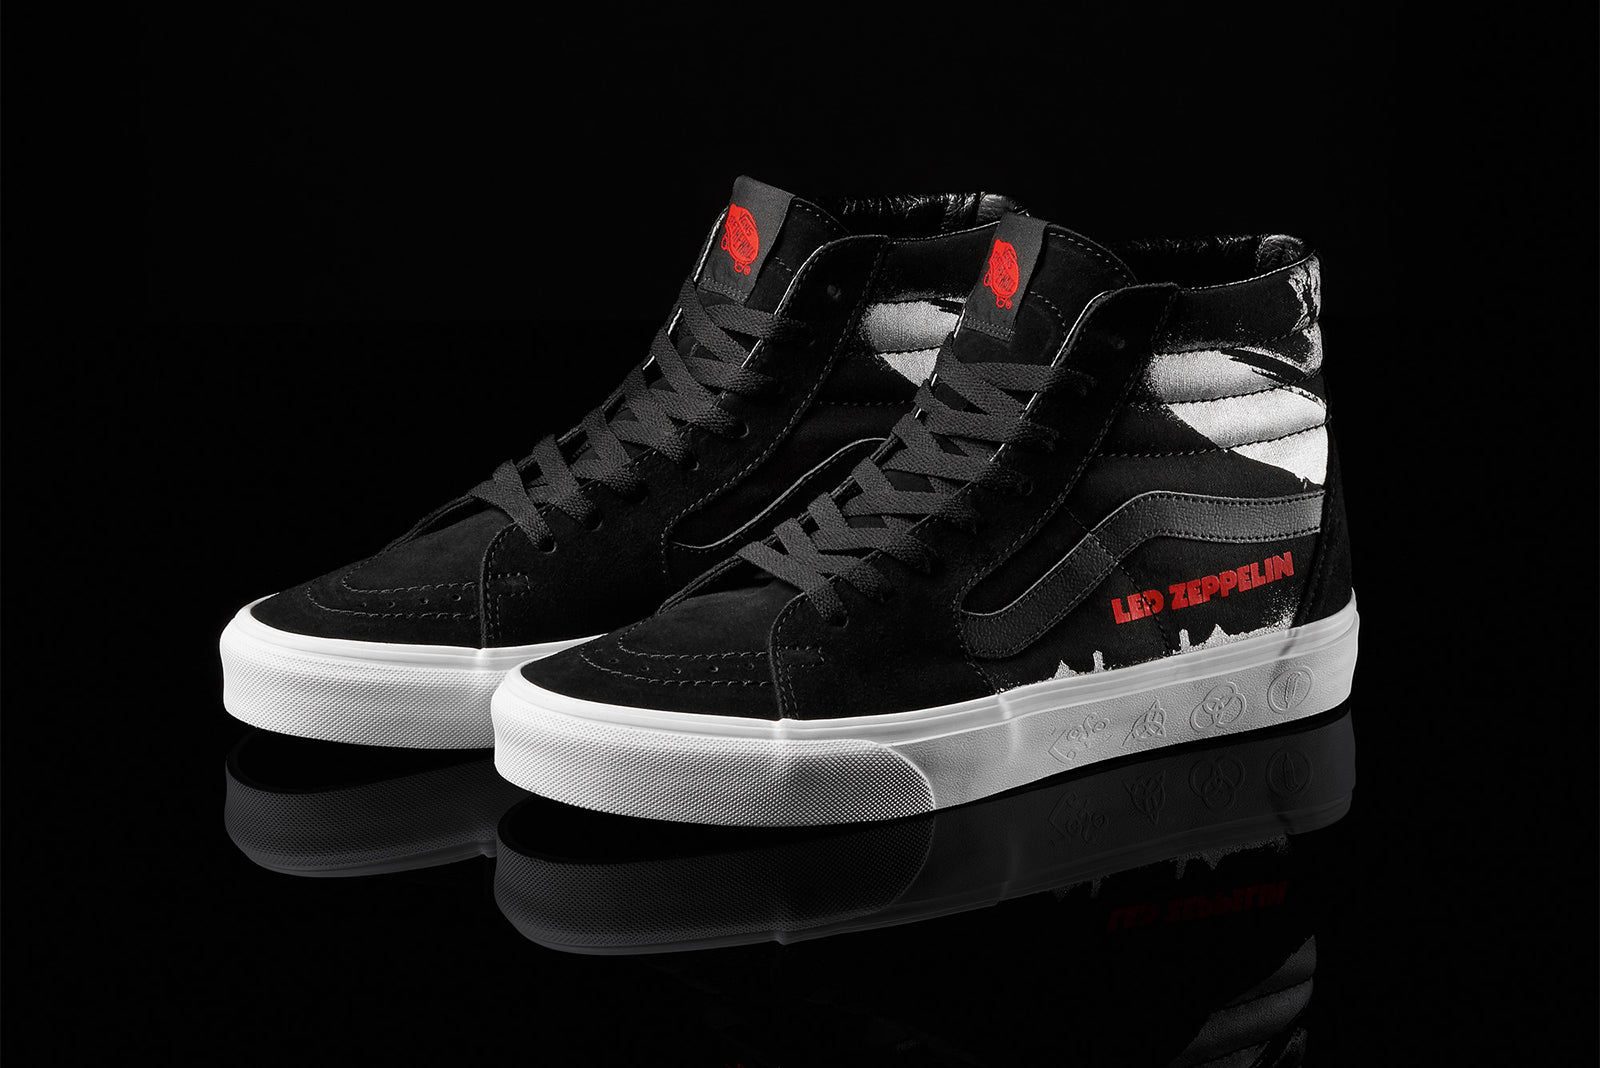 0078da8489466c Vans SK8-Hi x Led Zepplin VN0A38GET5Z Black True White Price  £79.00.  Launch  February 22nd